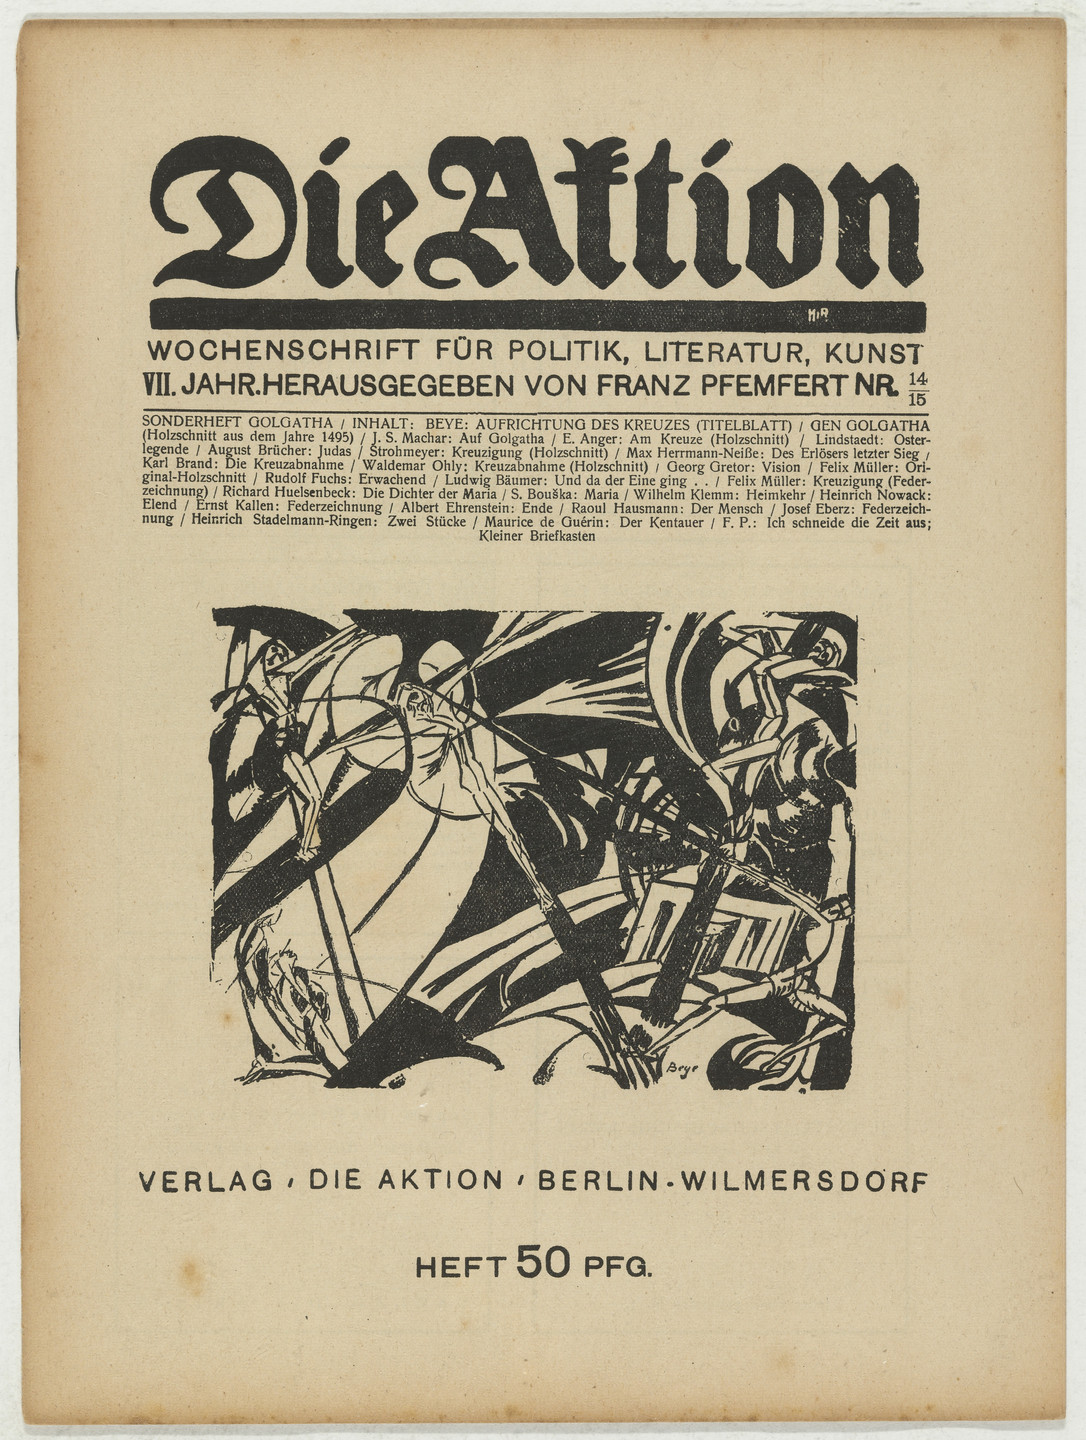 Herbert Anger, Ottheinrich Strohmeyer, Waldemar Ohly, Conrad Felixmüller. Die Aktion, vol. 7, no. 14/15. April 7, 1917